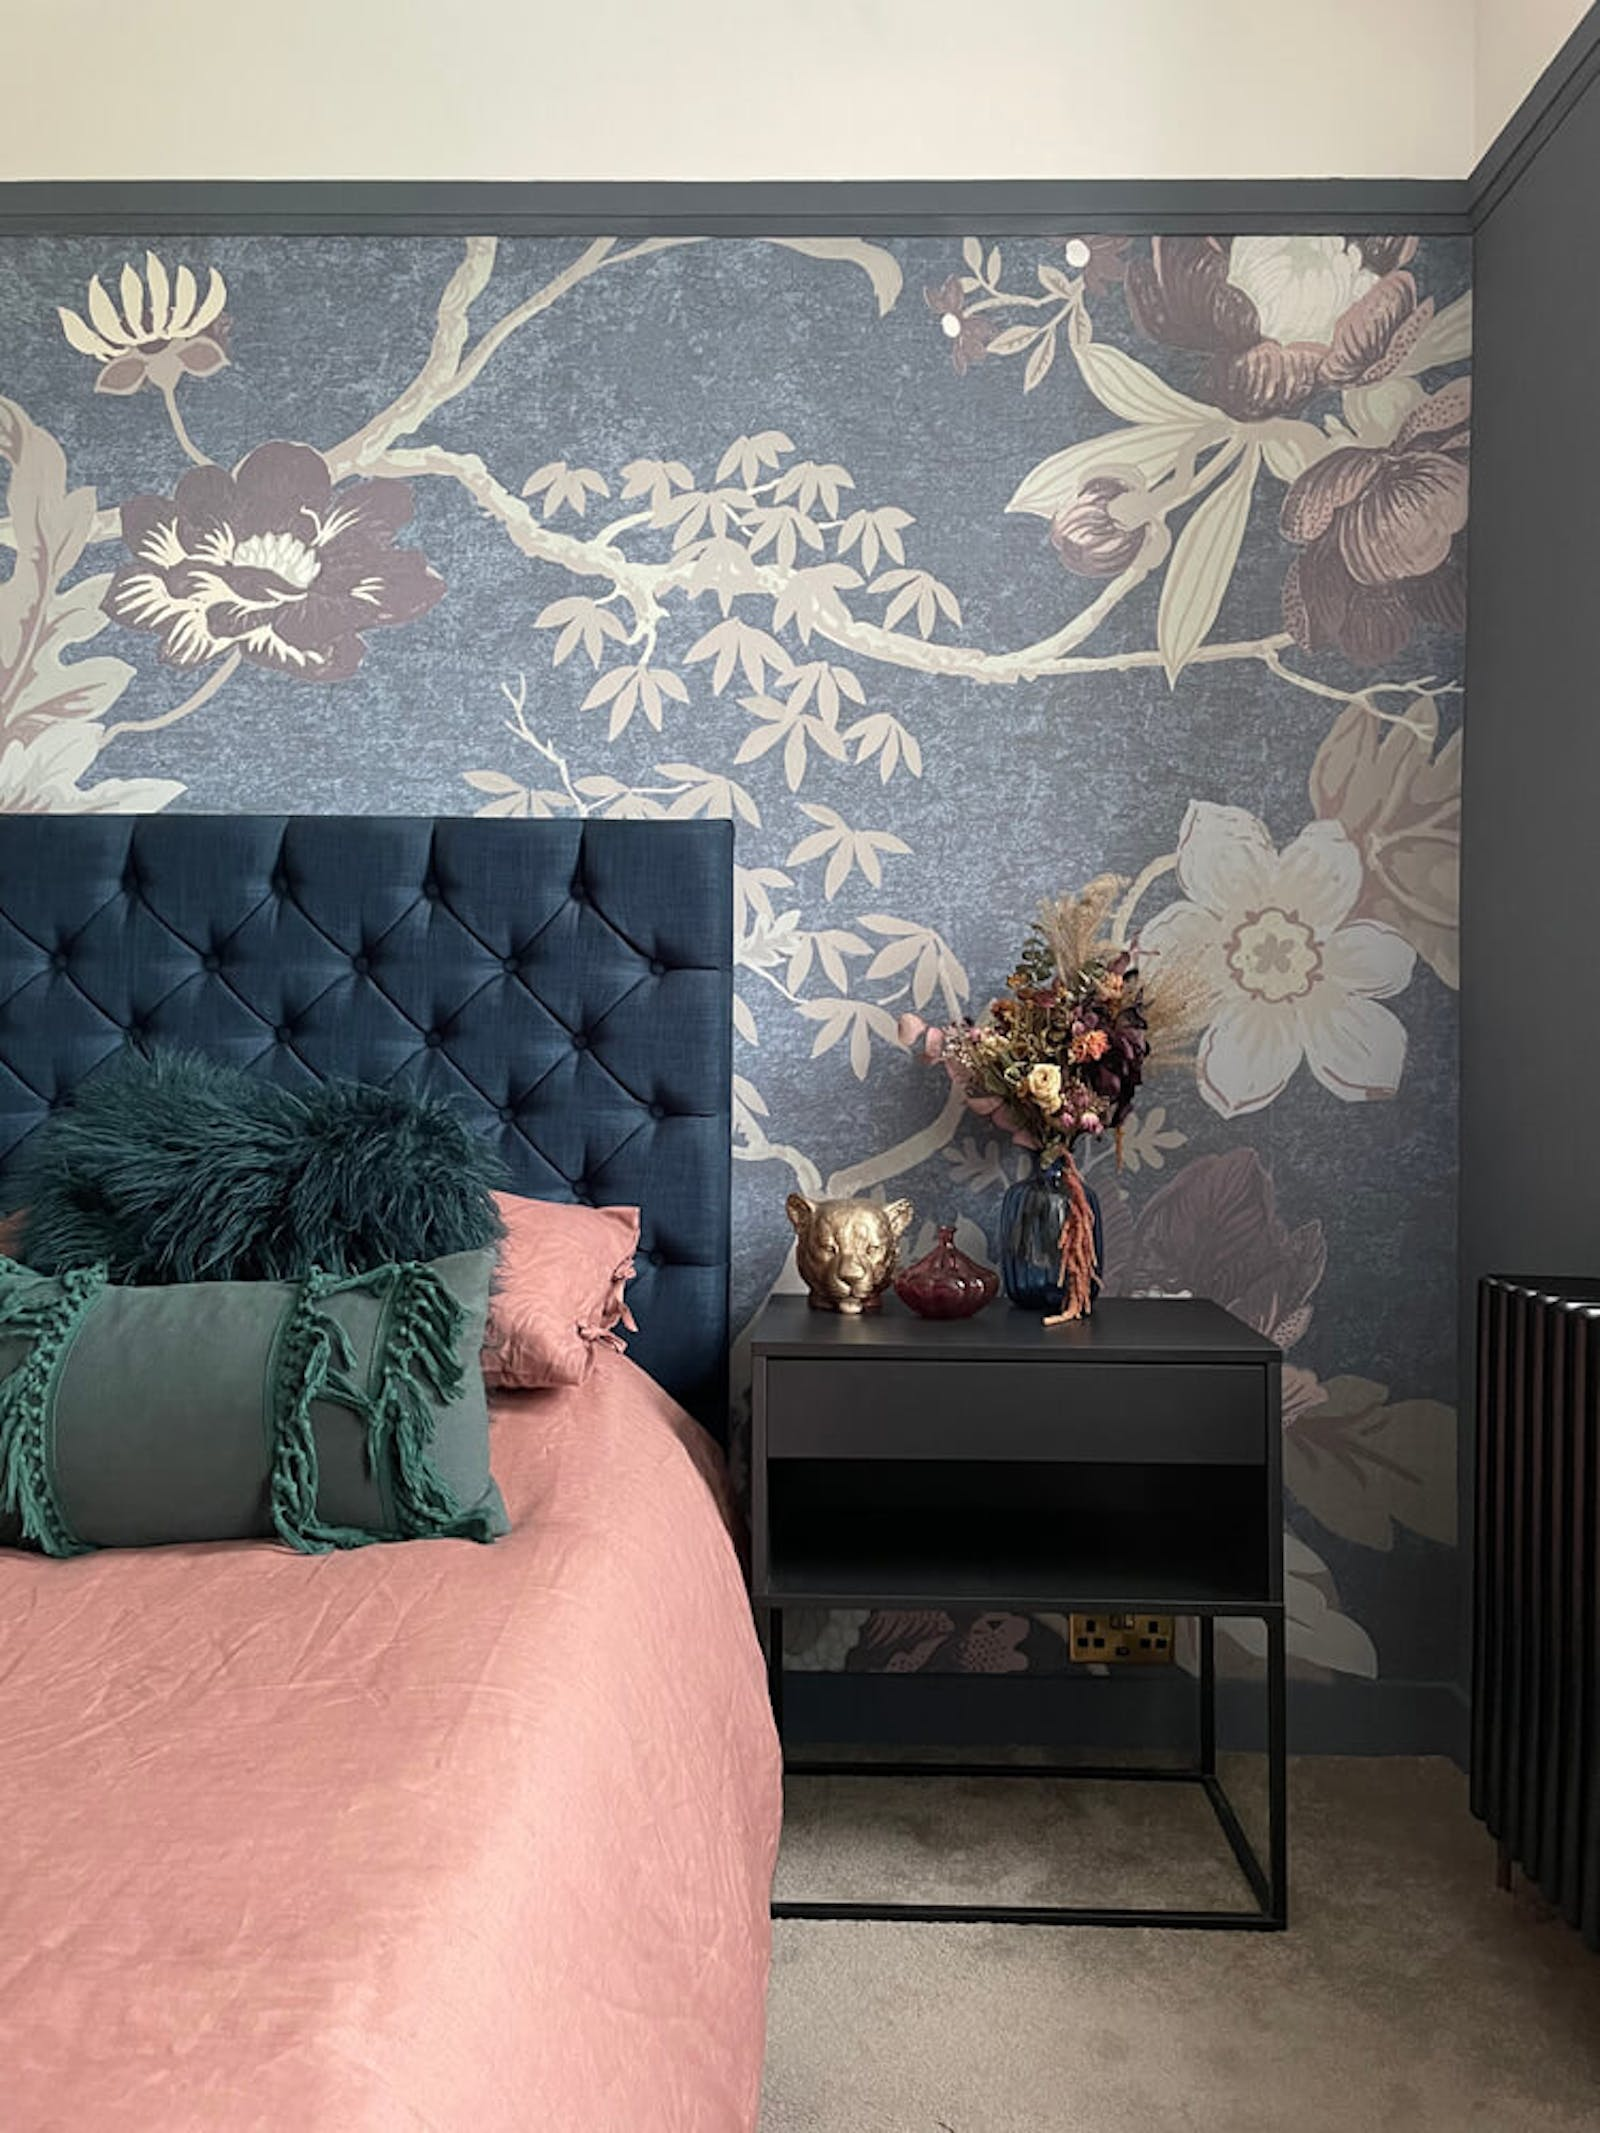 Bedroom with dried flowers and floral wallpaper behind the headboard